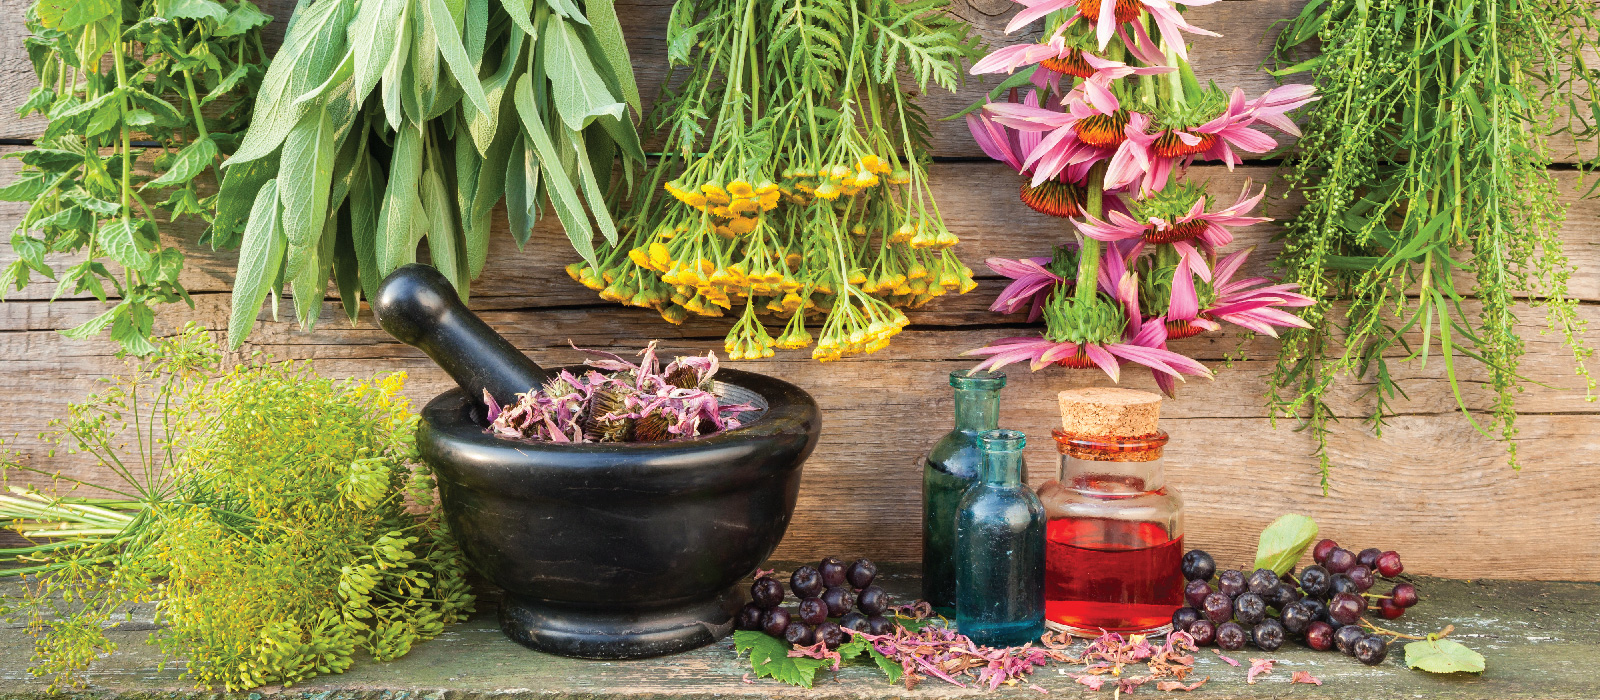 Herbal Remedies Vs Medicine For Pain Relief